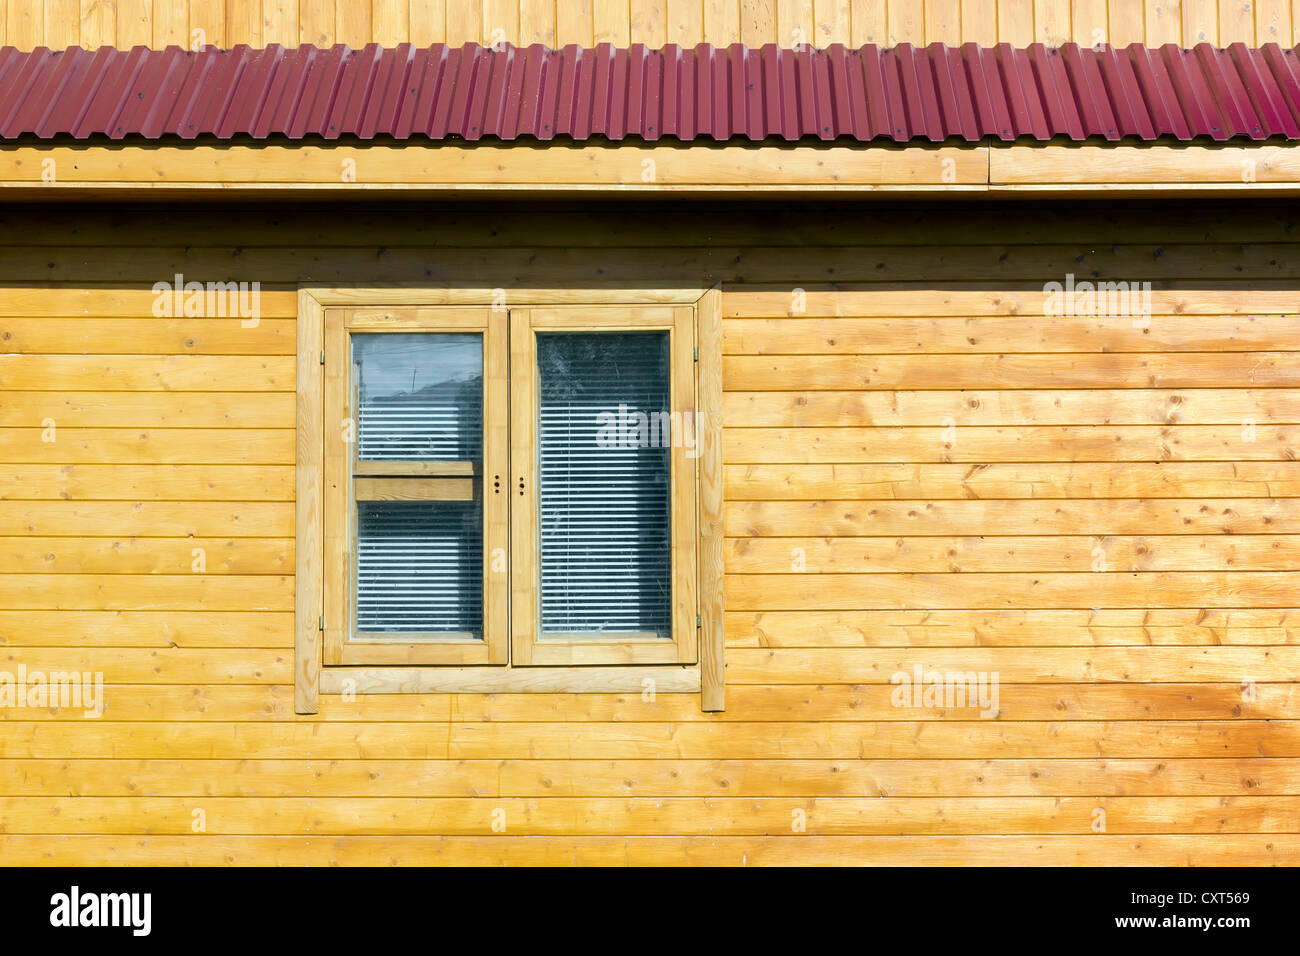 Rural rustic wooden house wall with widow is made by hand. The walls ...